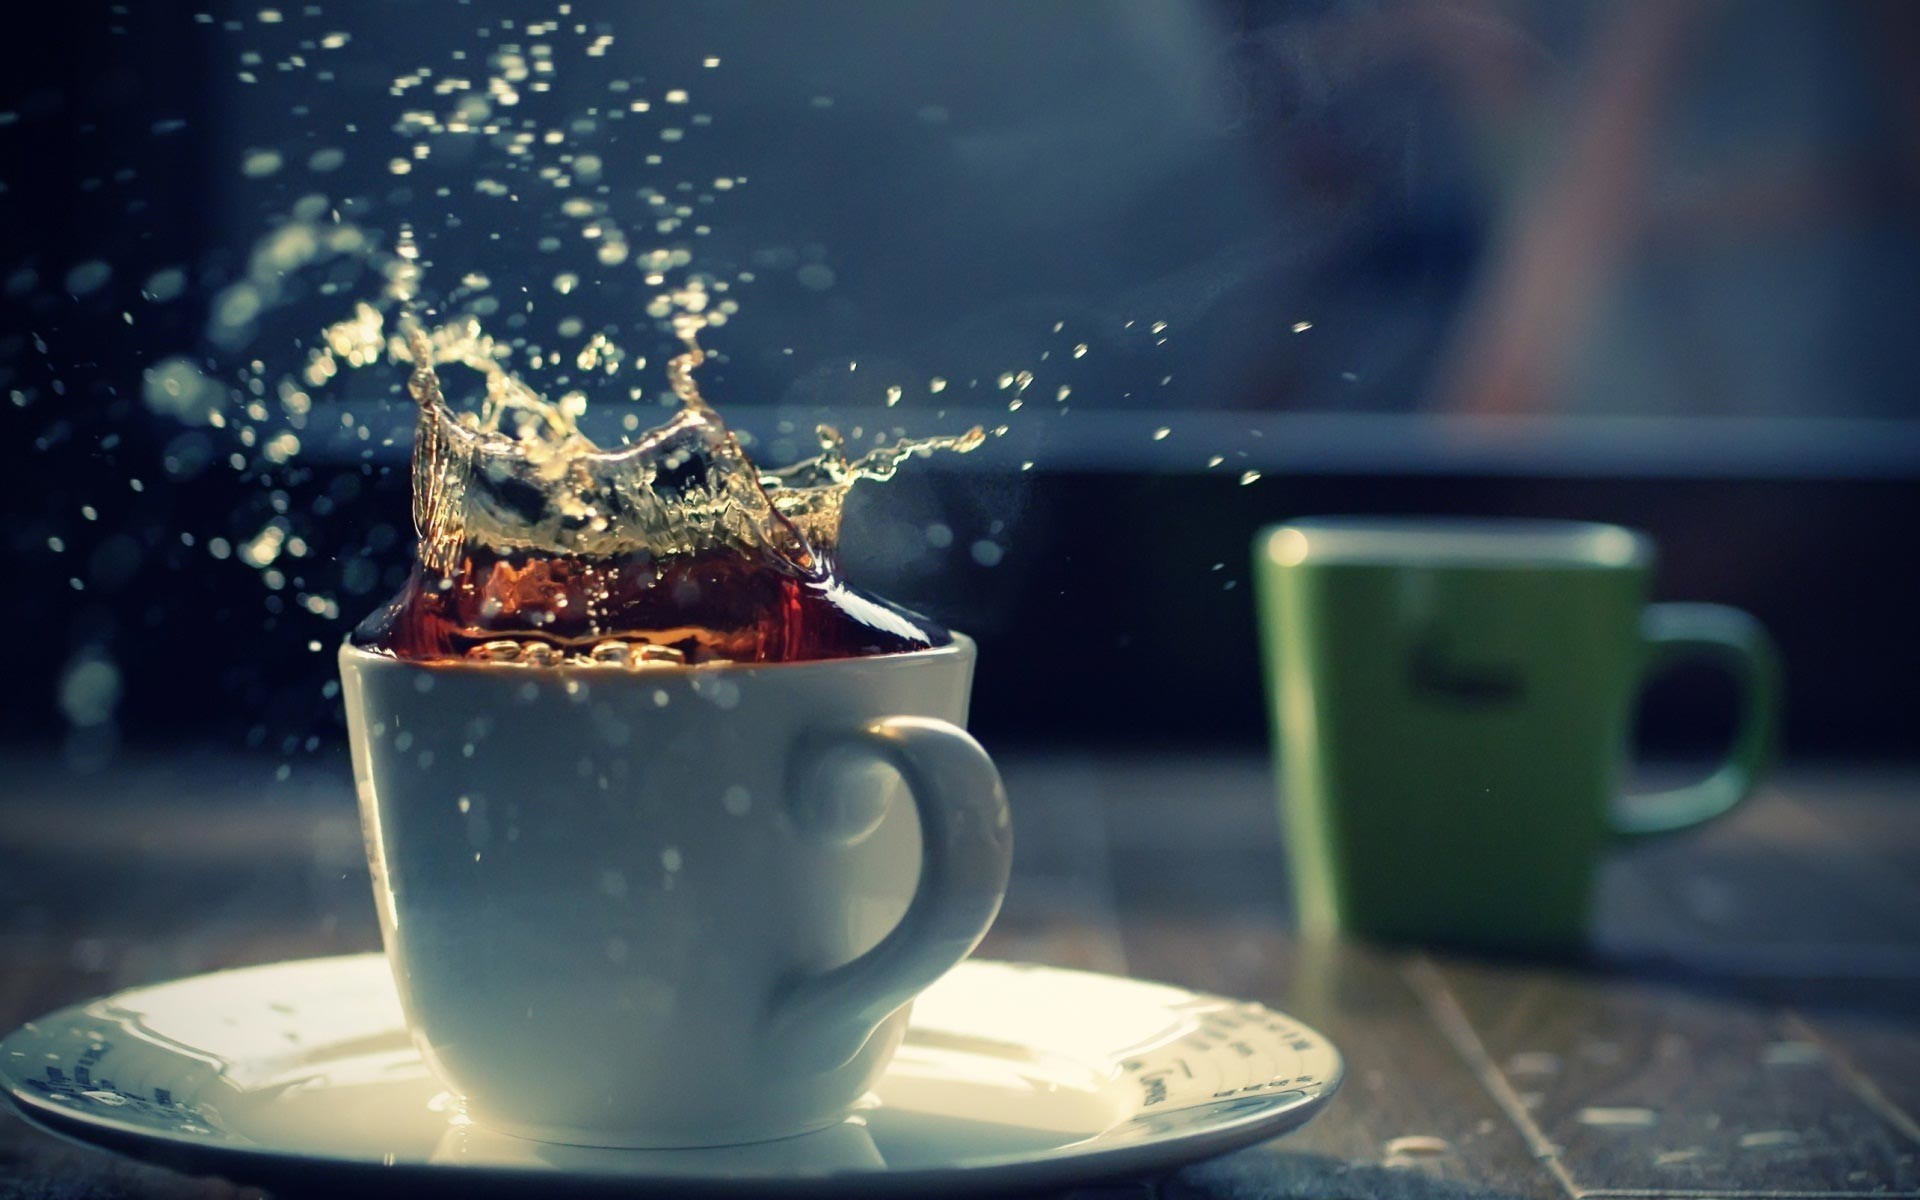 1920x1200 You can download Tea Cup Hd Wallpapers here. Tea Cup Hd Wallpapers In High  Resolution